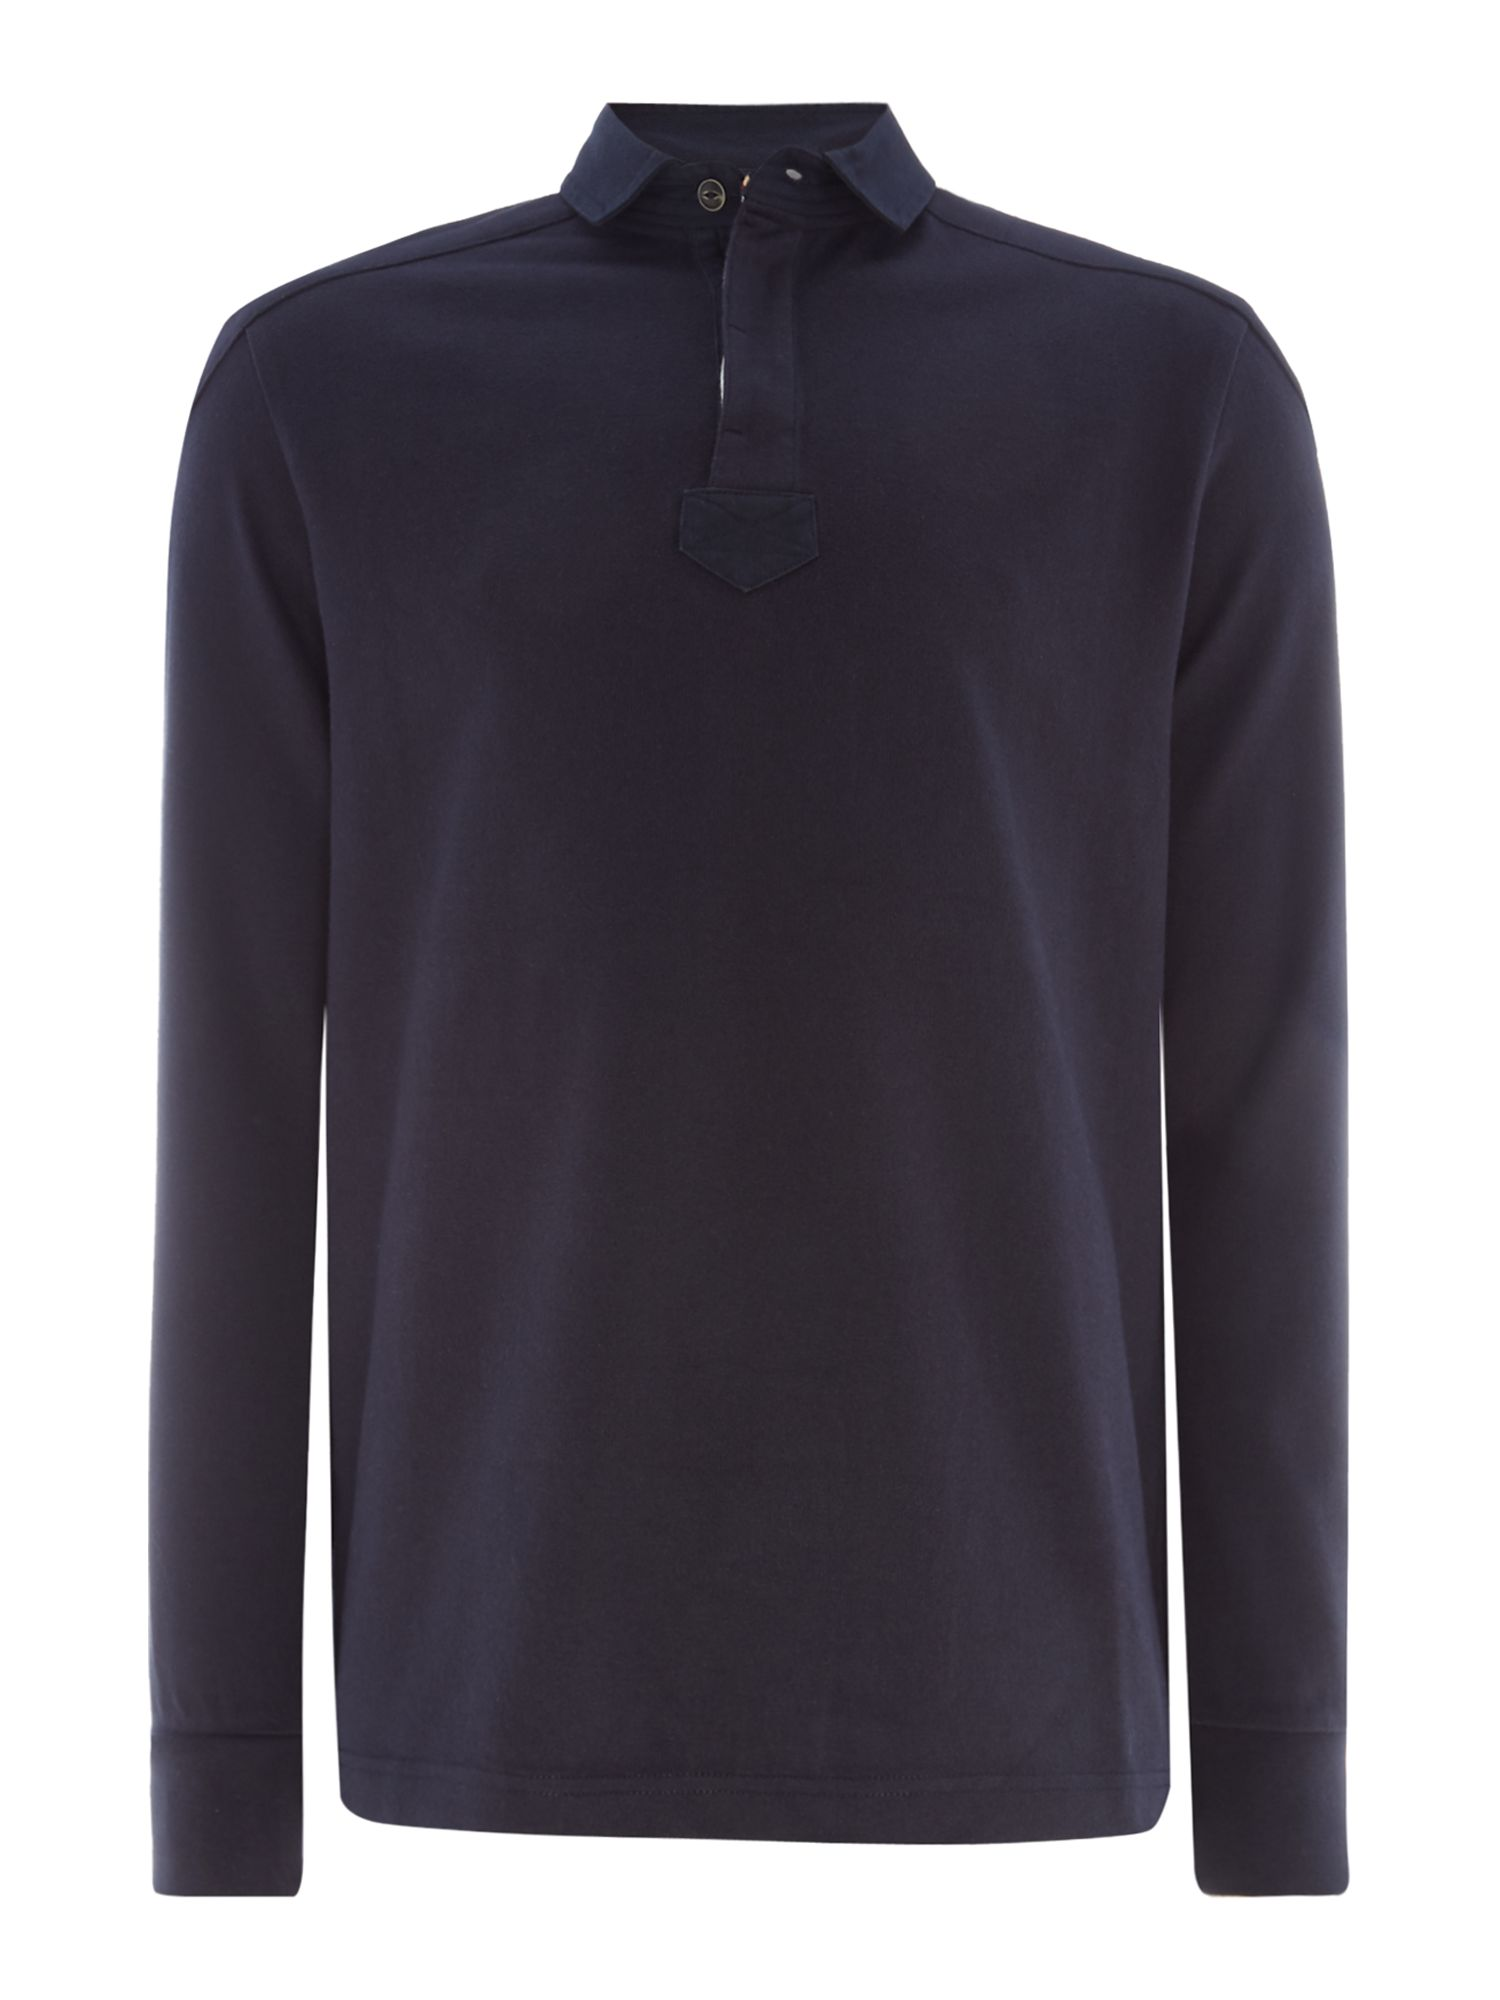 Men's Howick Signature Long Sleeve Rugby Shirt, Blue